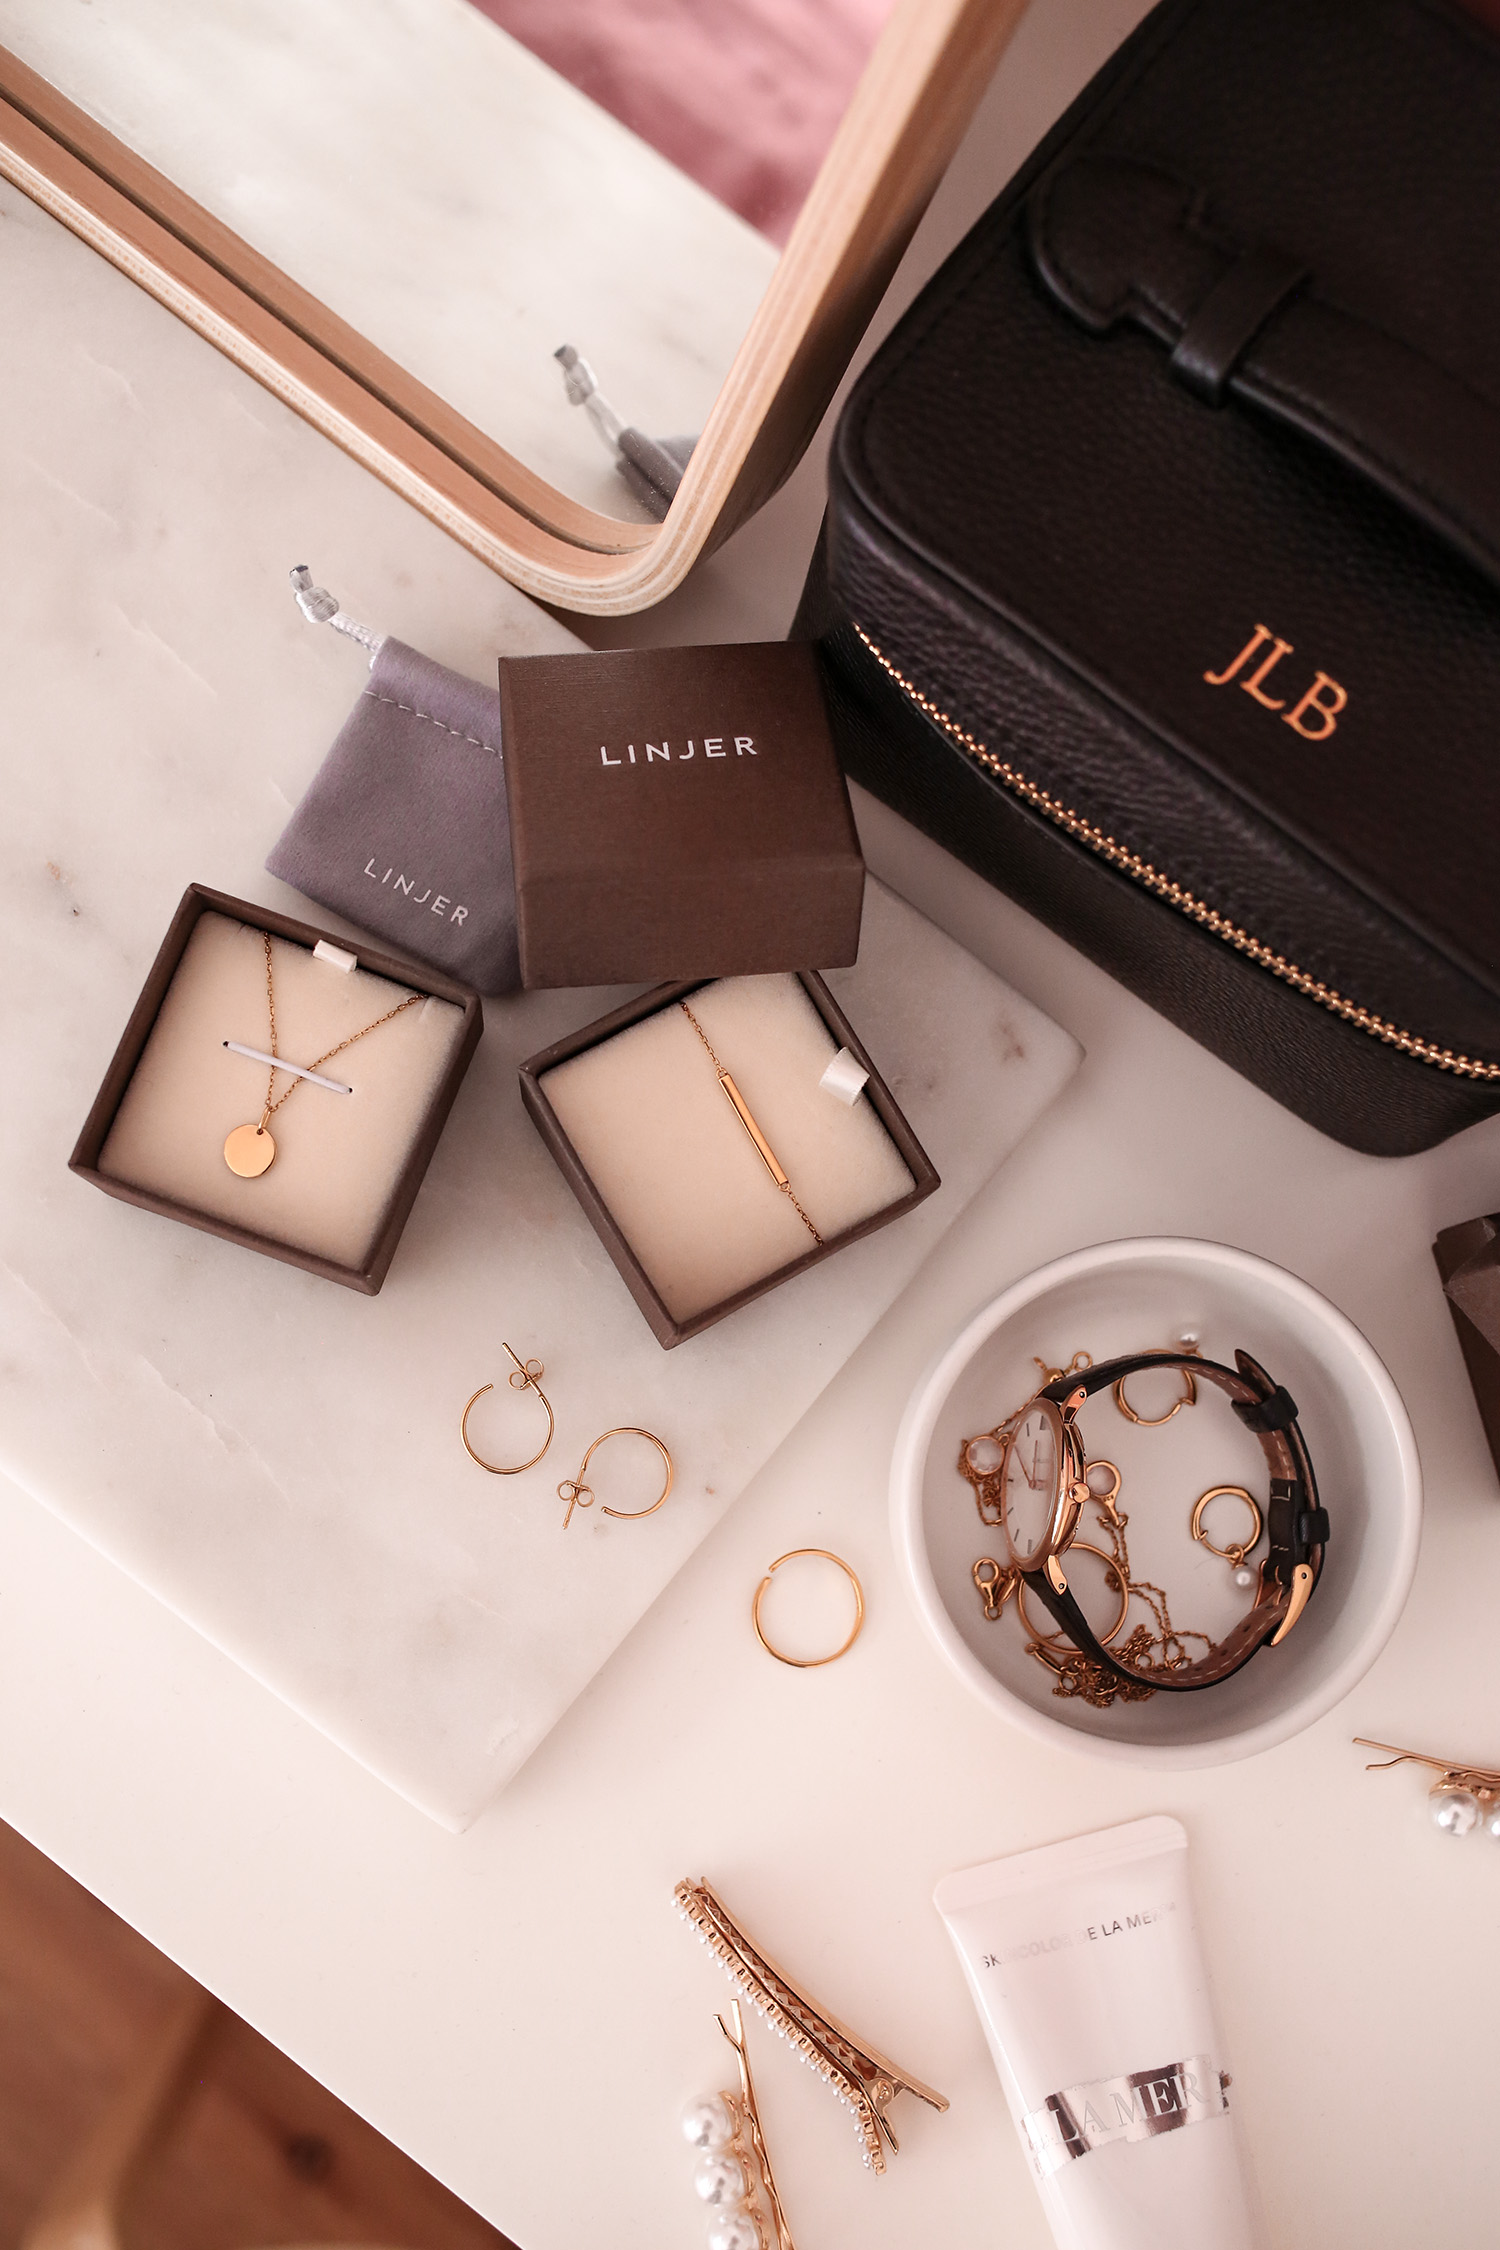 A look at Linjer's new jewelry line | Mademoiselle | A Minimalist Fashion Blog